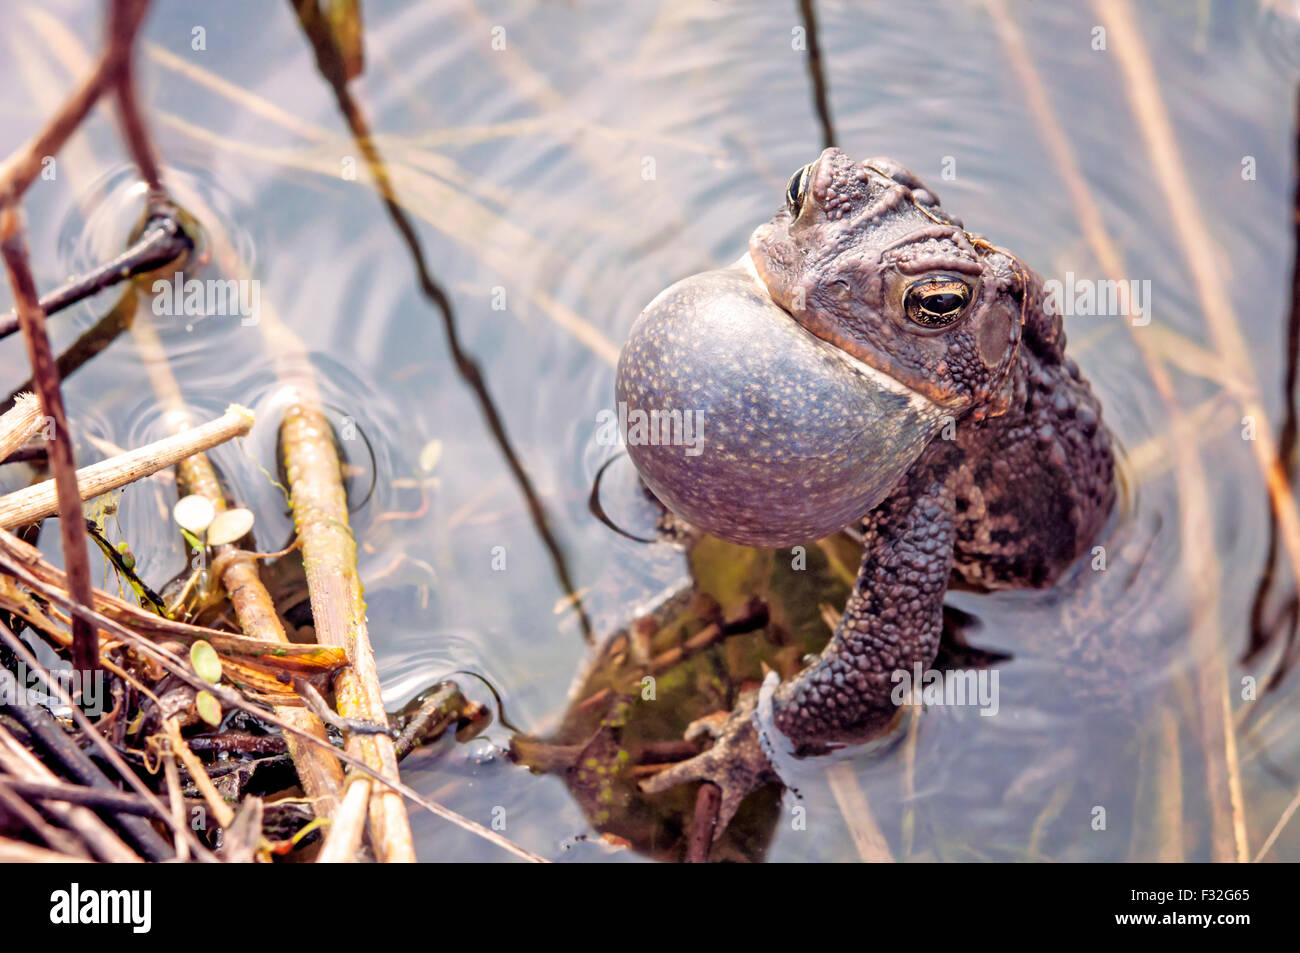 toad stockfotos toad bilder alamy. Black Bedroom Furniture Sets. Home Design Ideas